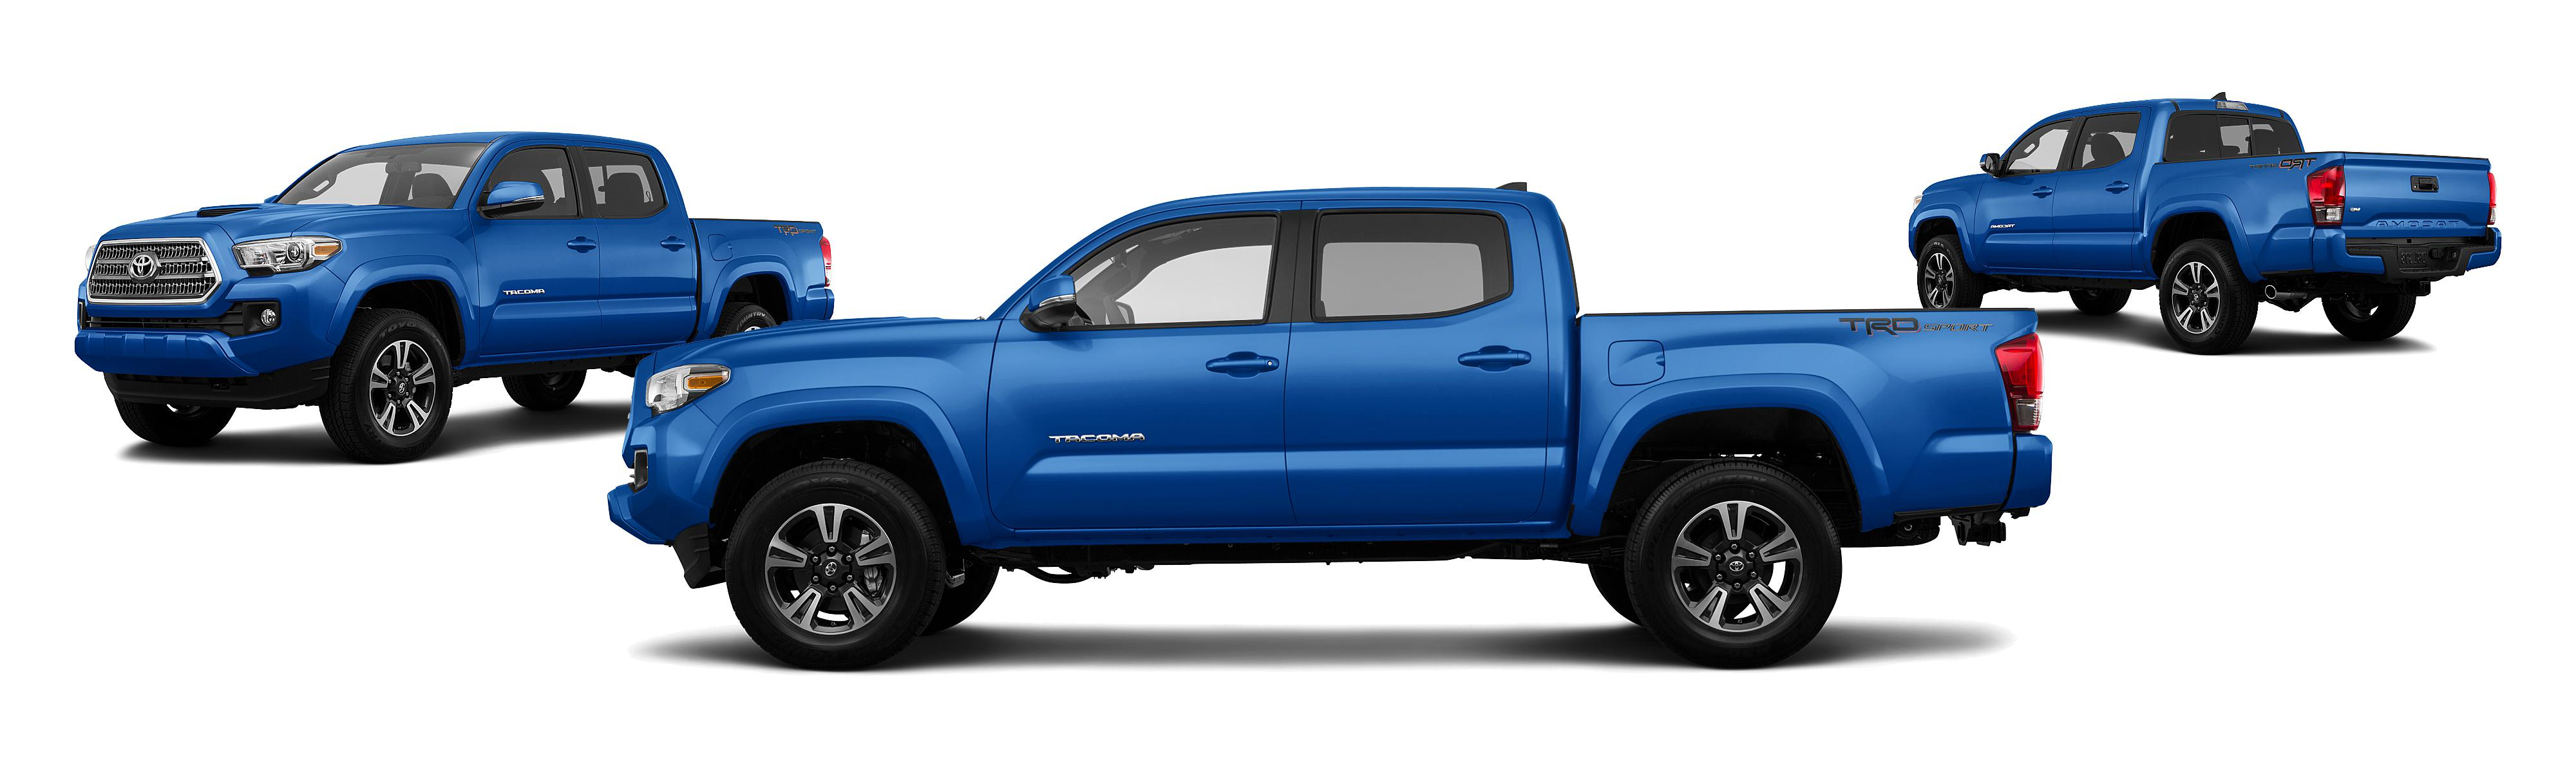 awaits to drop lends pro mat foot access bed easy fresh trd toyotatacomatrdprorear tailgate a an tacoma competition